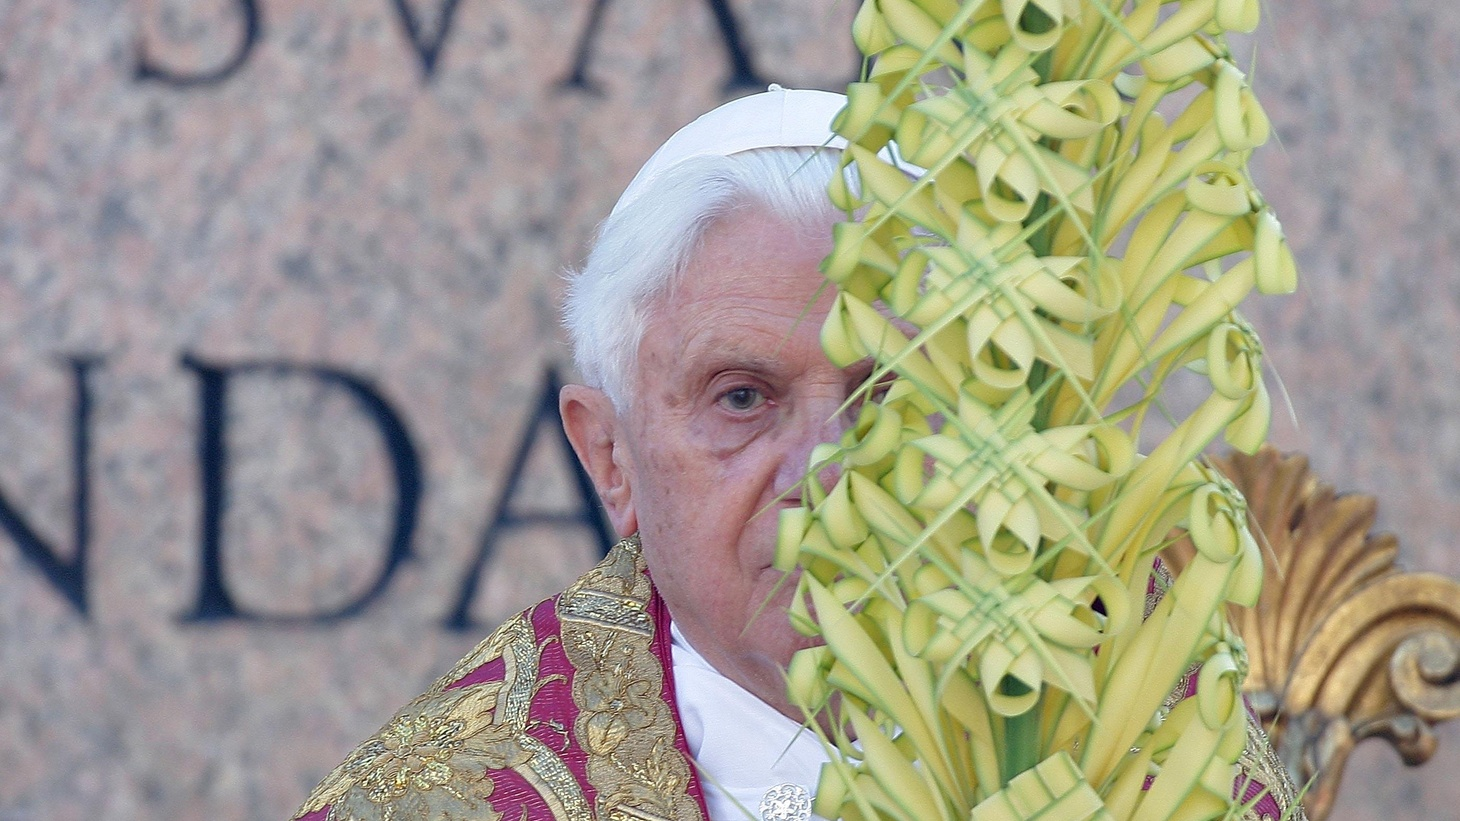 The worldwide scandal of pedophile priests has reached into the Vatican. Lay Catholics are asking the Pope himself to reveal what he knew, when he knew it and how he responded. We look at the details in the context of 2000 years of institutional history. Also, the Obama Administration clears way for expanded offshore drilling. On Reporter's Notebook, has the Special Relationship between the US and Britain come to an end?